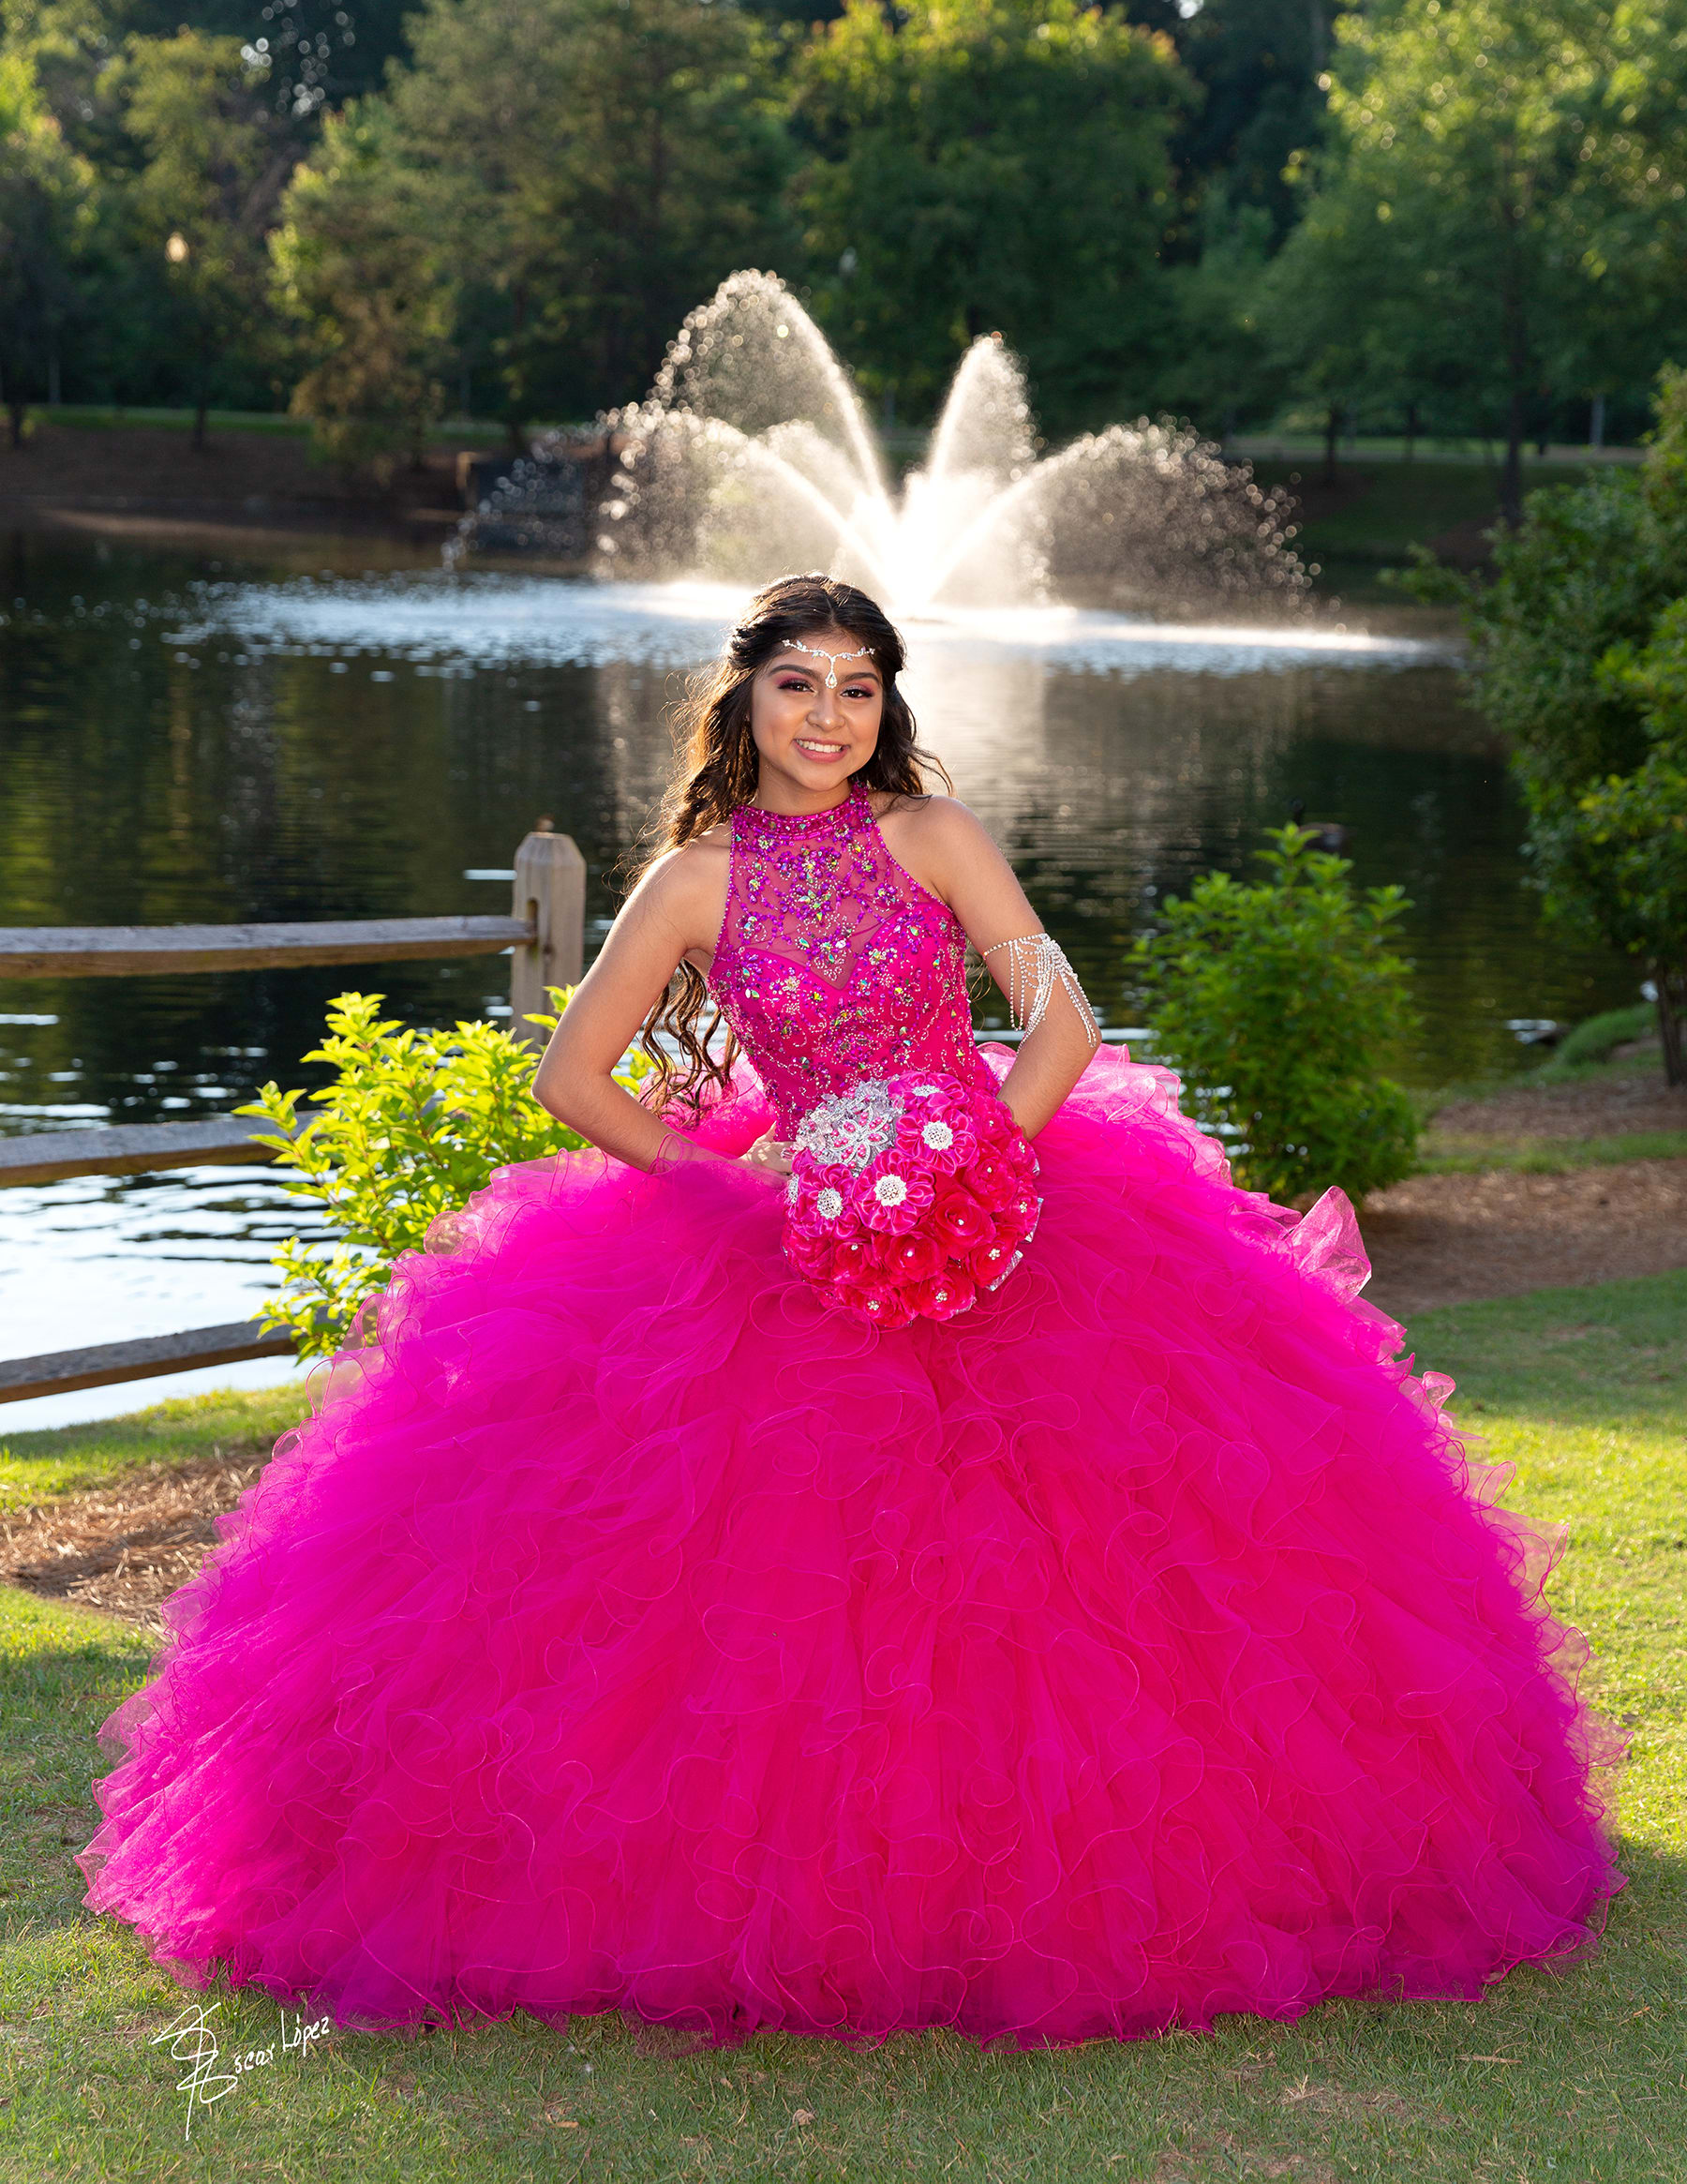 Quinceañera de la semana: Nicole Rivera (7 FOTOS Y VIDEO)